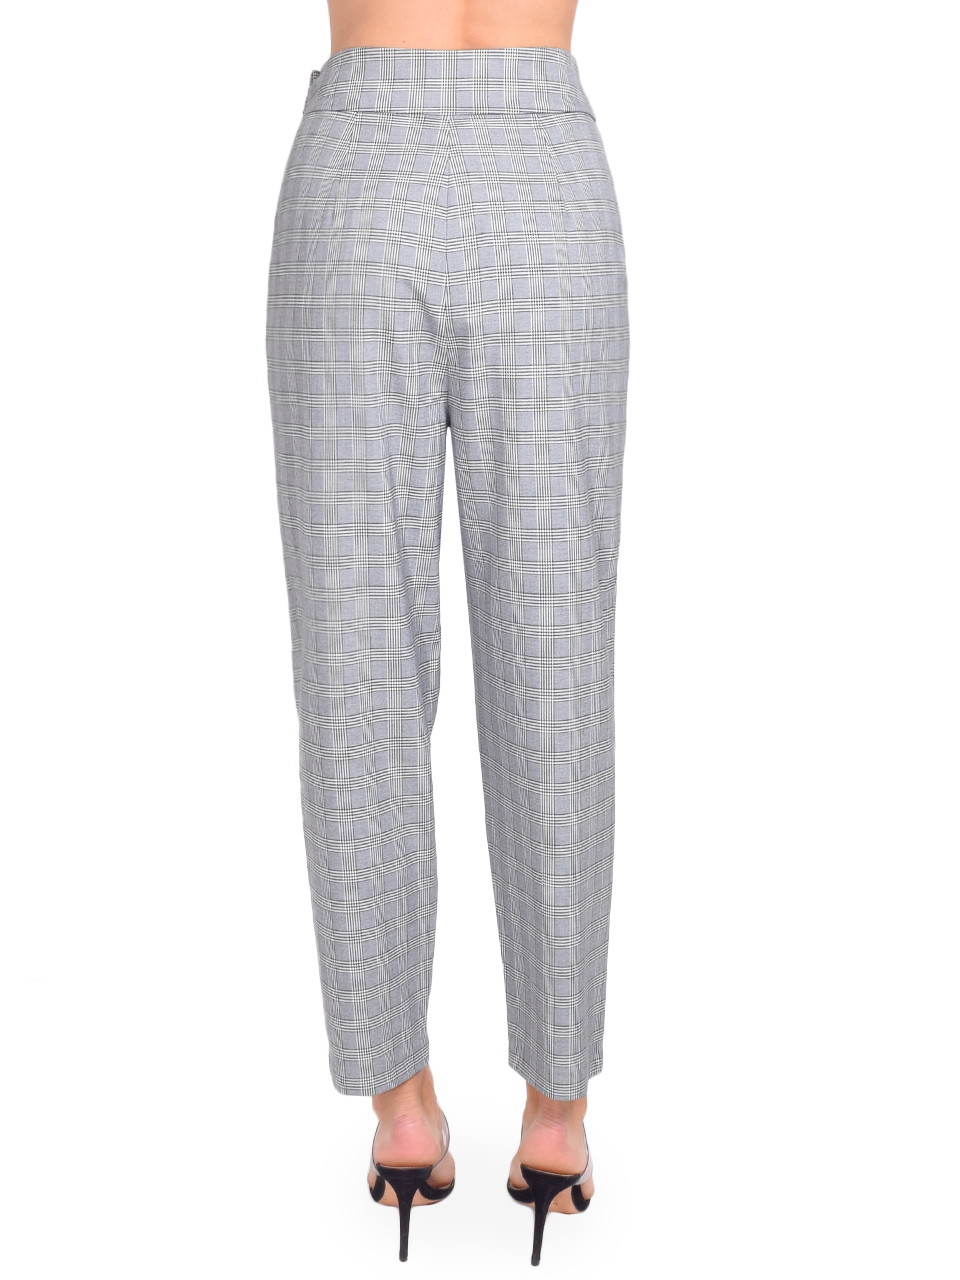 CINQ A SEPT Serenity Pant in Houndstooth Plaid Back View